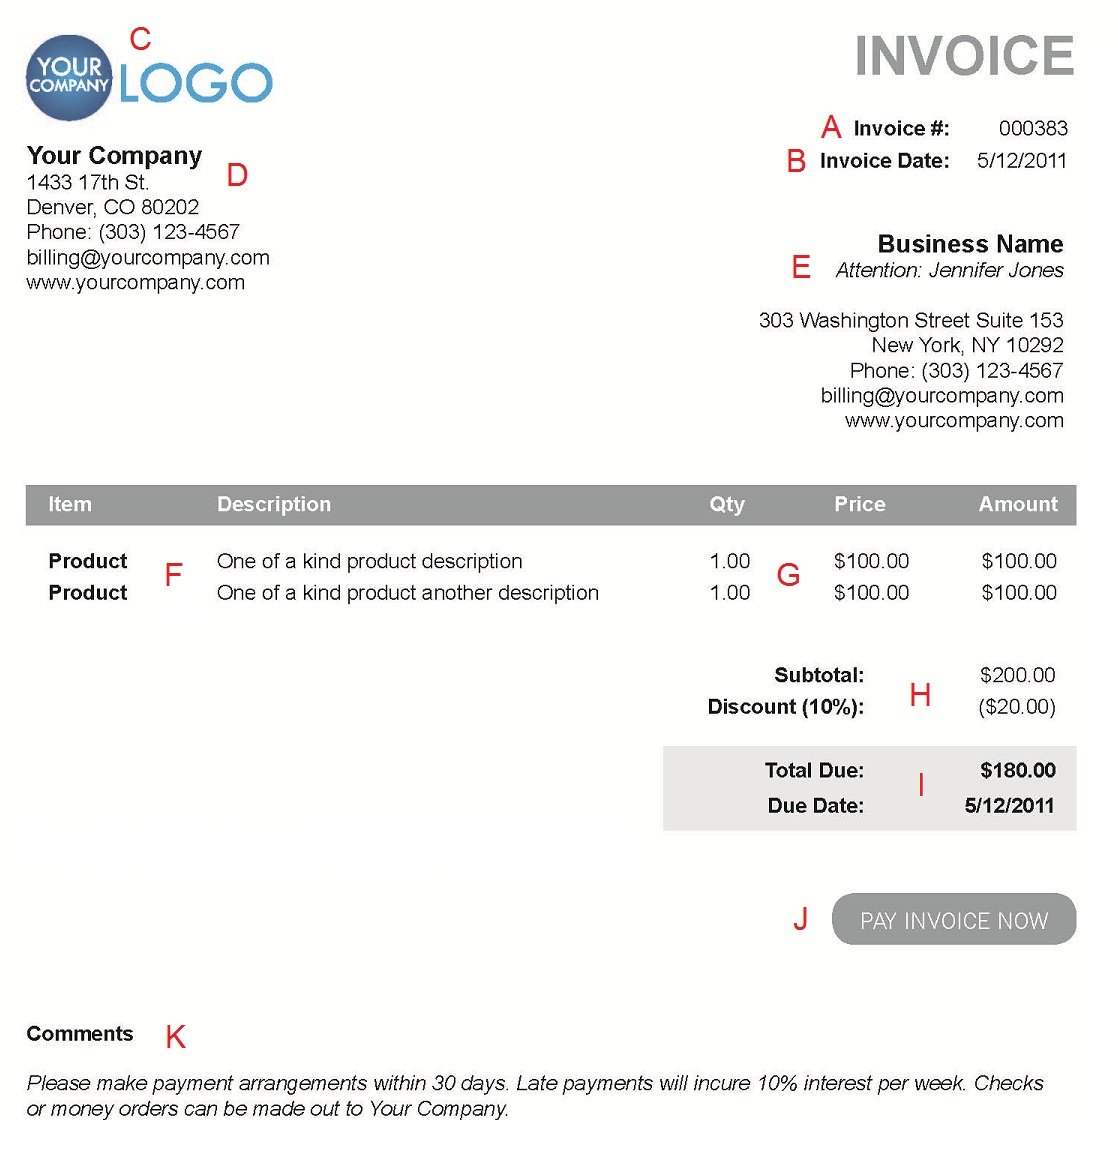 Pigbrotherus  Nice The  Different Sections Of An Electronic Payment Invoice With Licious A  With Beauteous Commercial Invoice For Shipping Also Invoicing With Stripe In Addition Invoice Software Free Download And Ms Access Invoice Template As Well As Free Blank Invoice Template Word Additionally  Nissan Rogue Invoice Price From Paysimplecom With Pigbrotherus  Licious The  Different Sections Of An Electronic Payment Invoice With Beauteous A  And Nice Commercial Invoice For Shipping Also Invoicing With Stripe In Addition Invoice Software Free Download From Paysimplecom